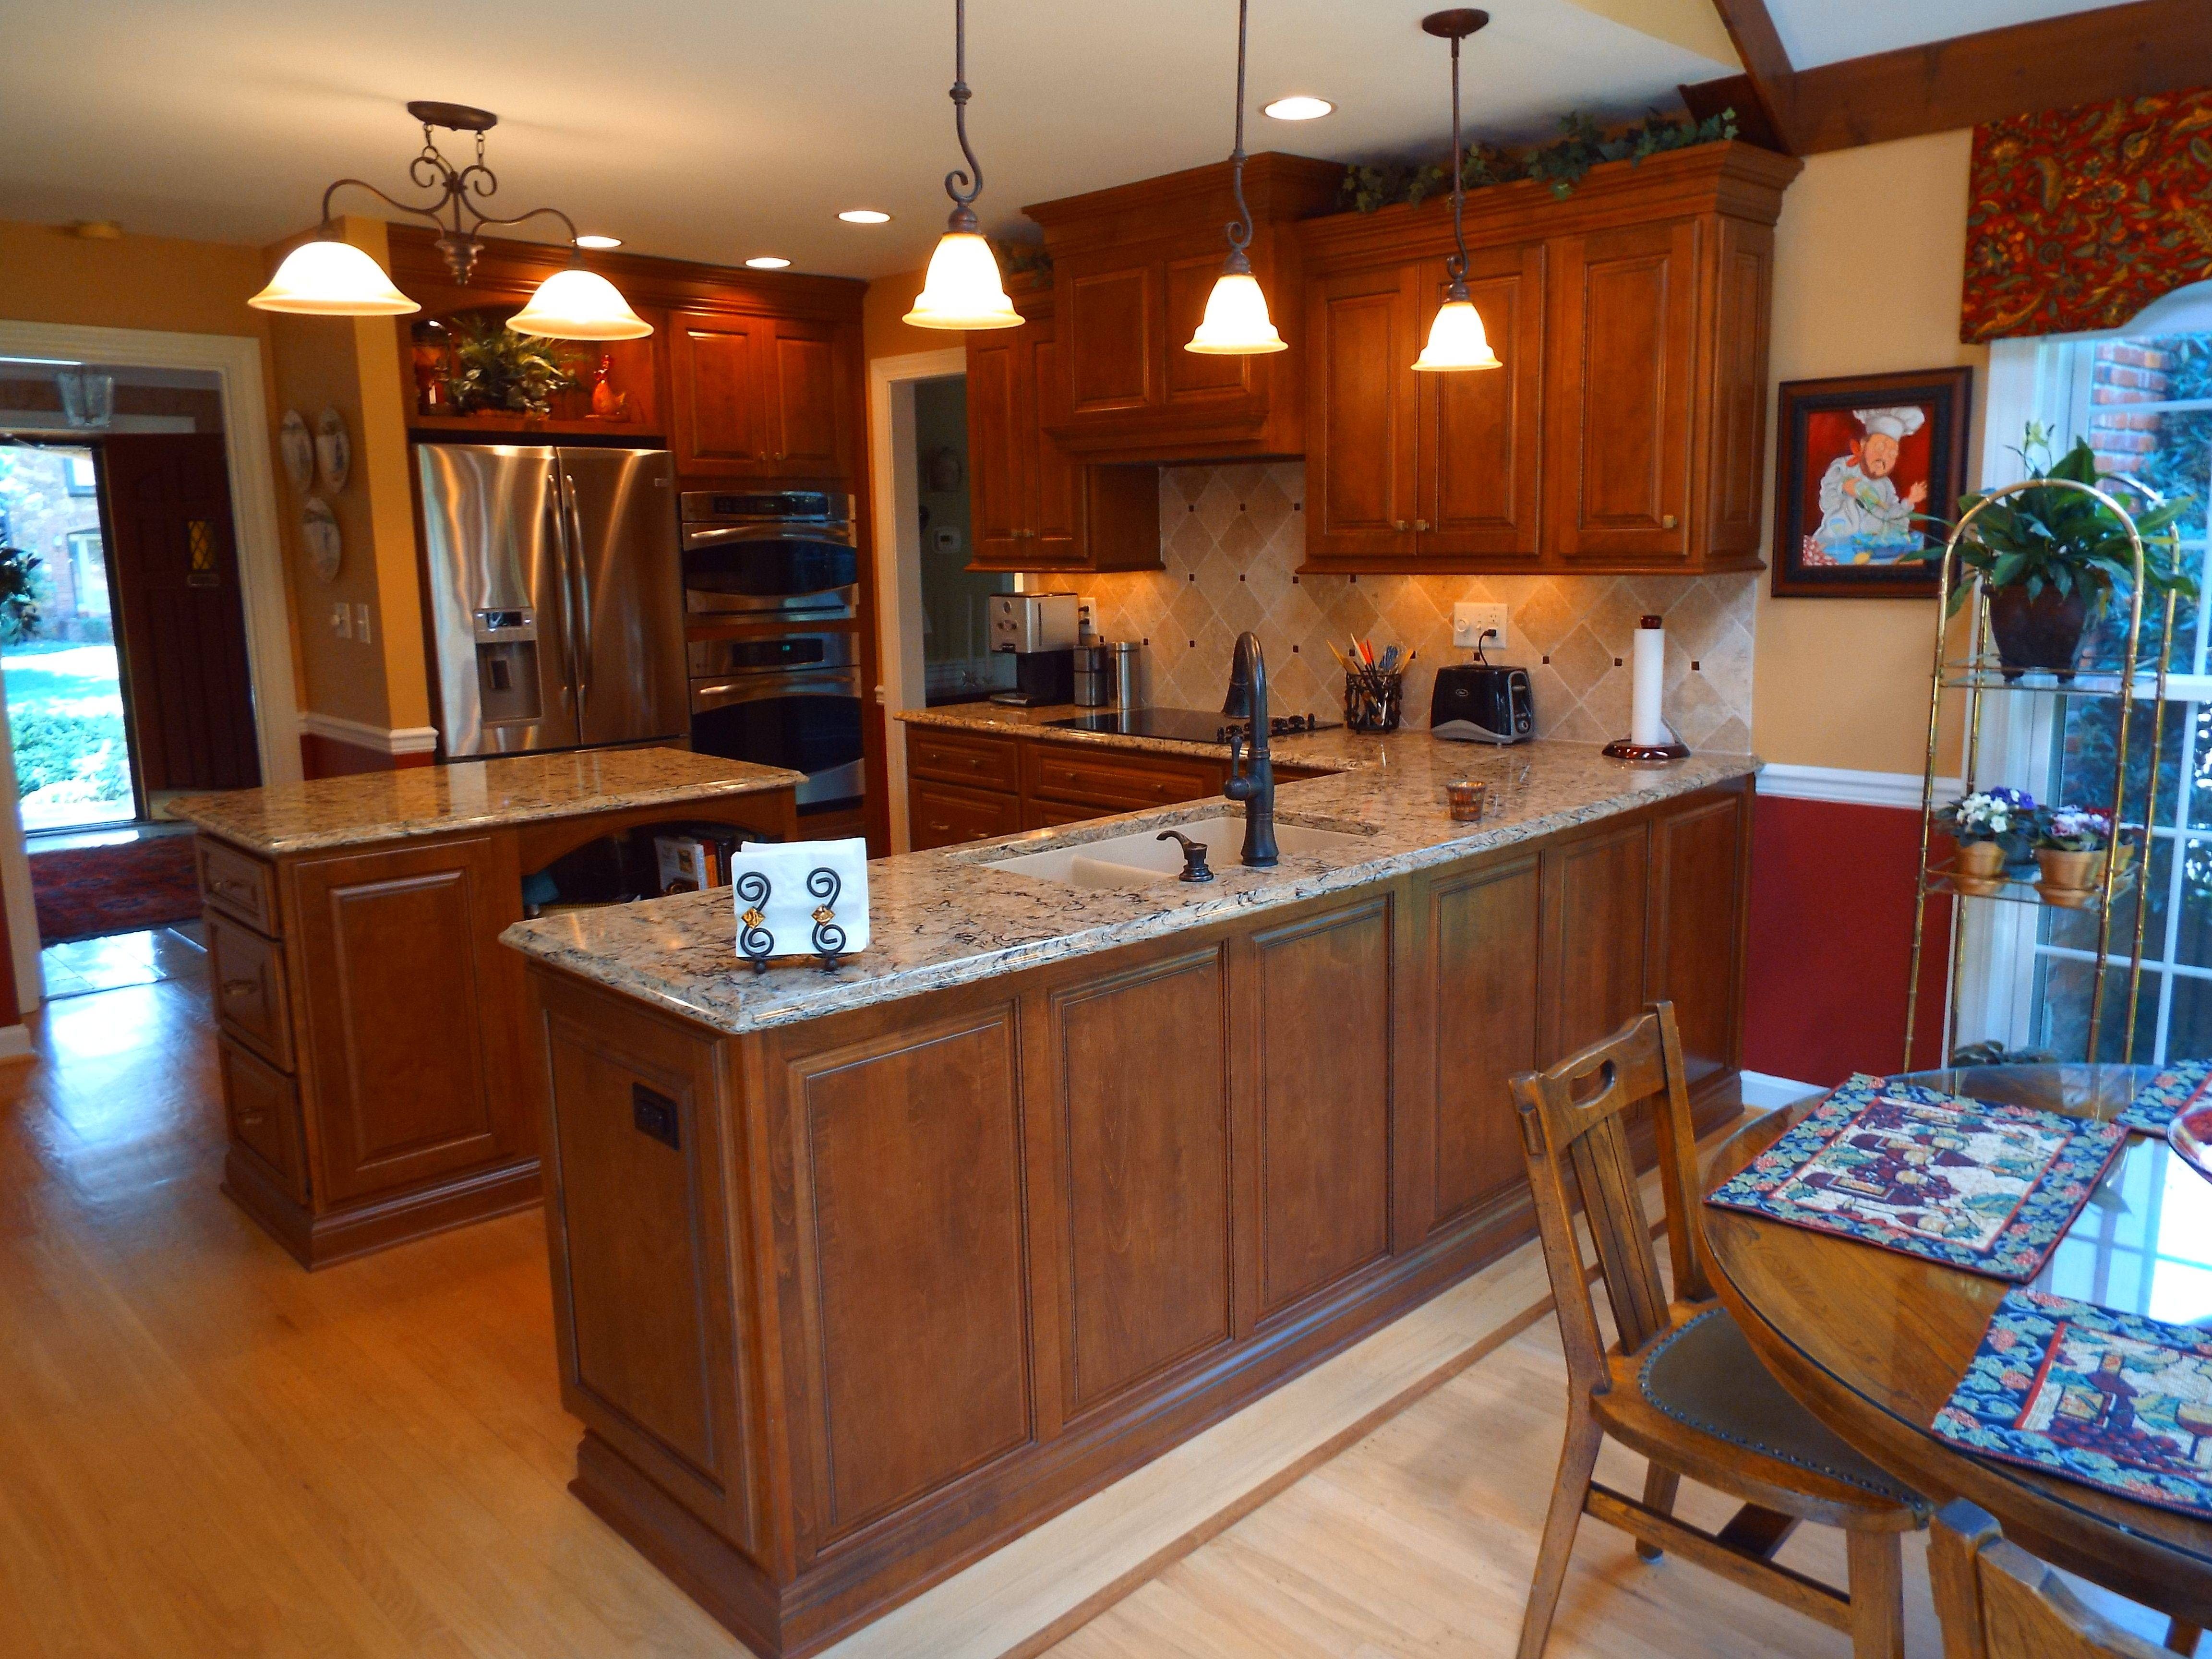 Shiloh Oxford Door Panel Full Overlay Maple Spice With Mocha Glaze Cambria Tops Bradshaw Kitchen Beautiful Kitchens Cherry Cabinets Kitchen